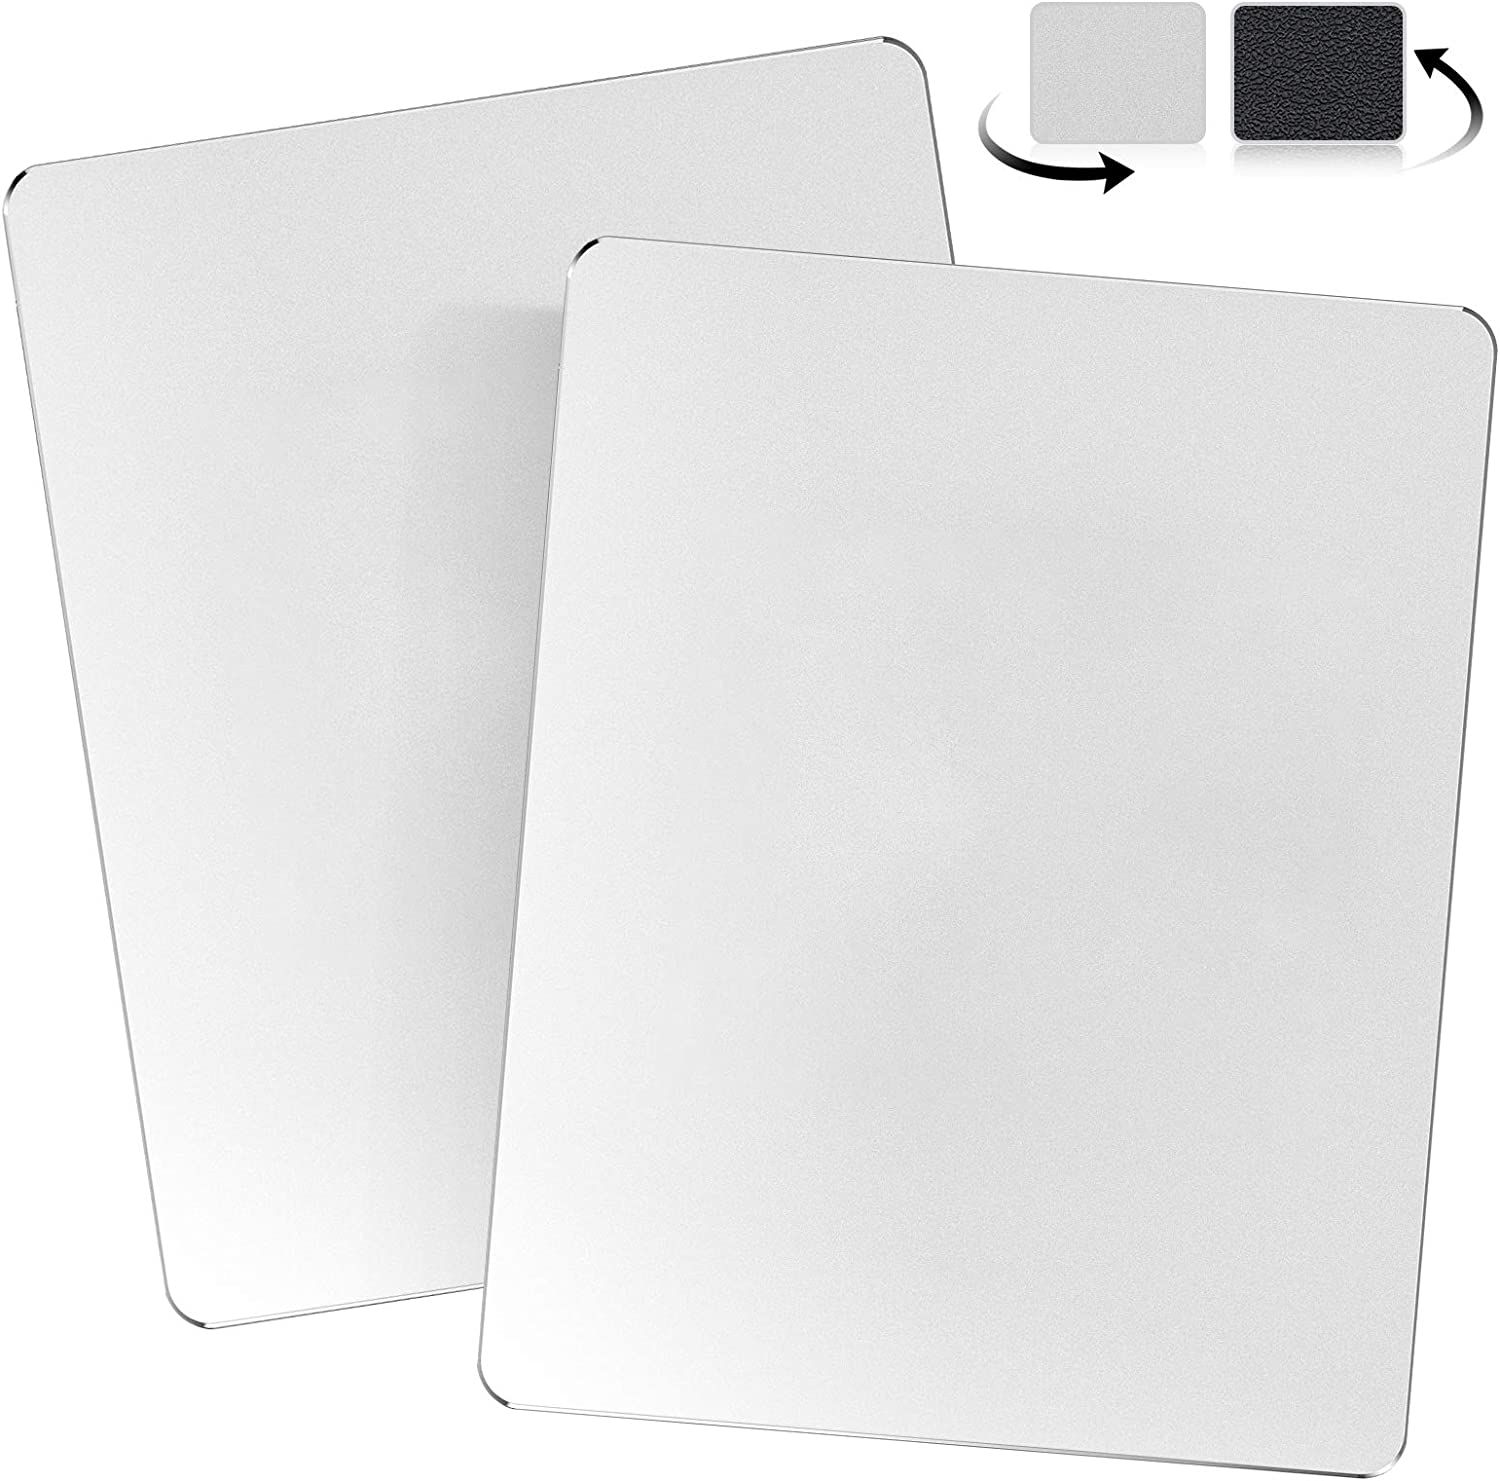 JEDIA 2 Packs Mouse Pad, Silver Premium Hard Metal Aluminum Mouse Pad, Ultra Smooth Double Side Waterproof Fast and Accurate Control Mousepad for Gaming, Office and Home, 9.4